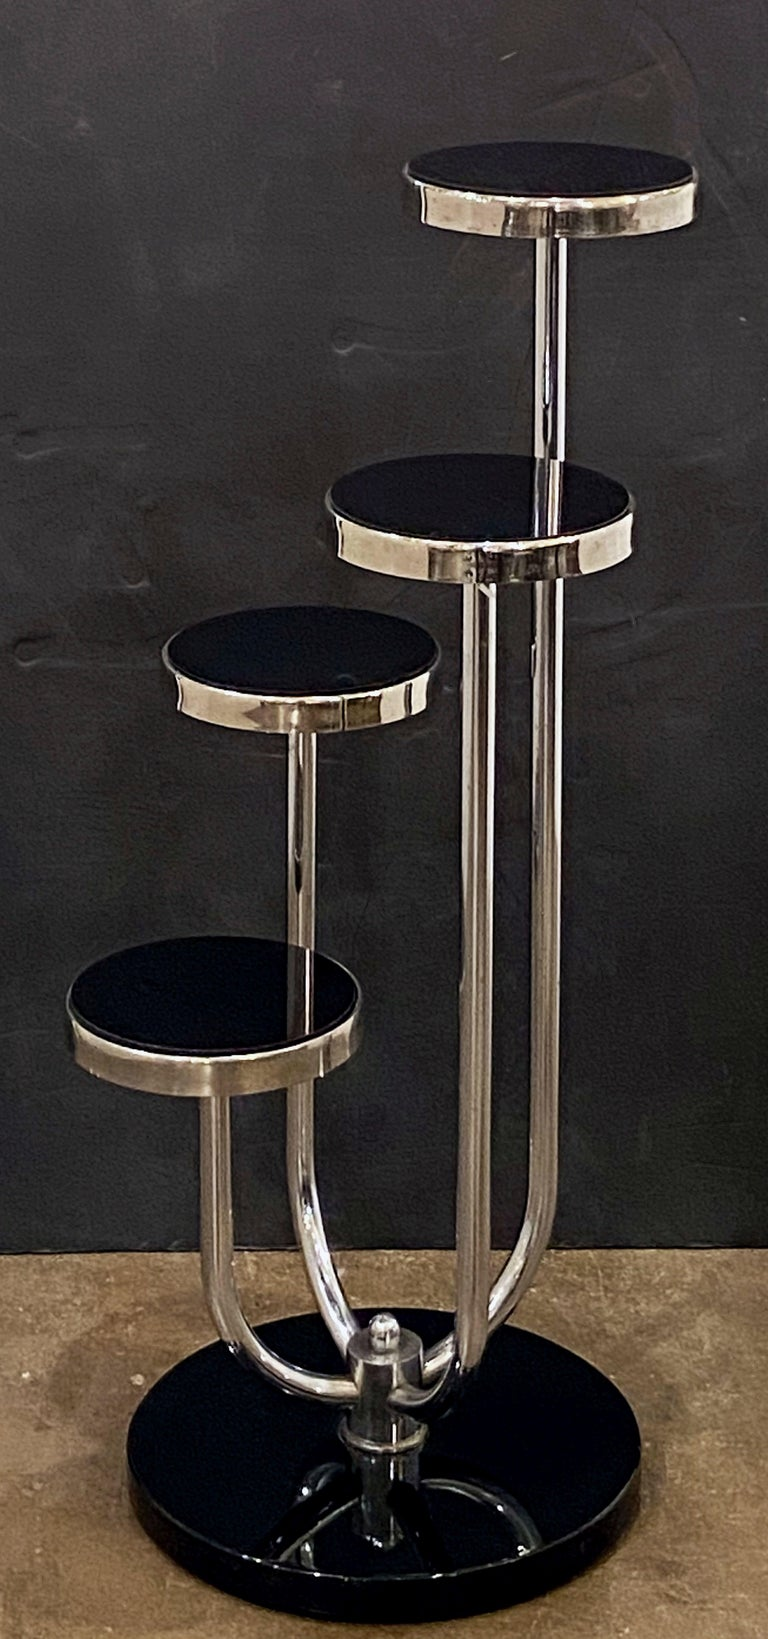 Pair of Czech Art Deco Étagères of Chrome and Smoked Glass 'Priced Individually' For Sale 5